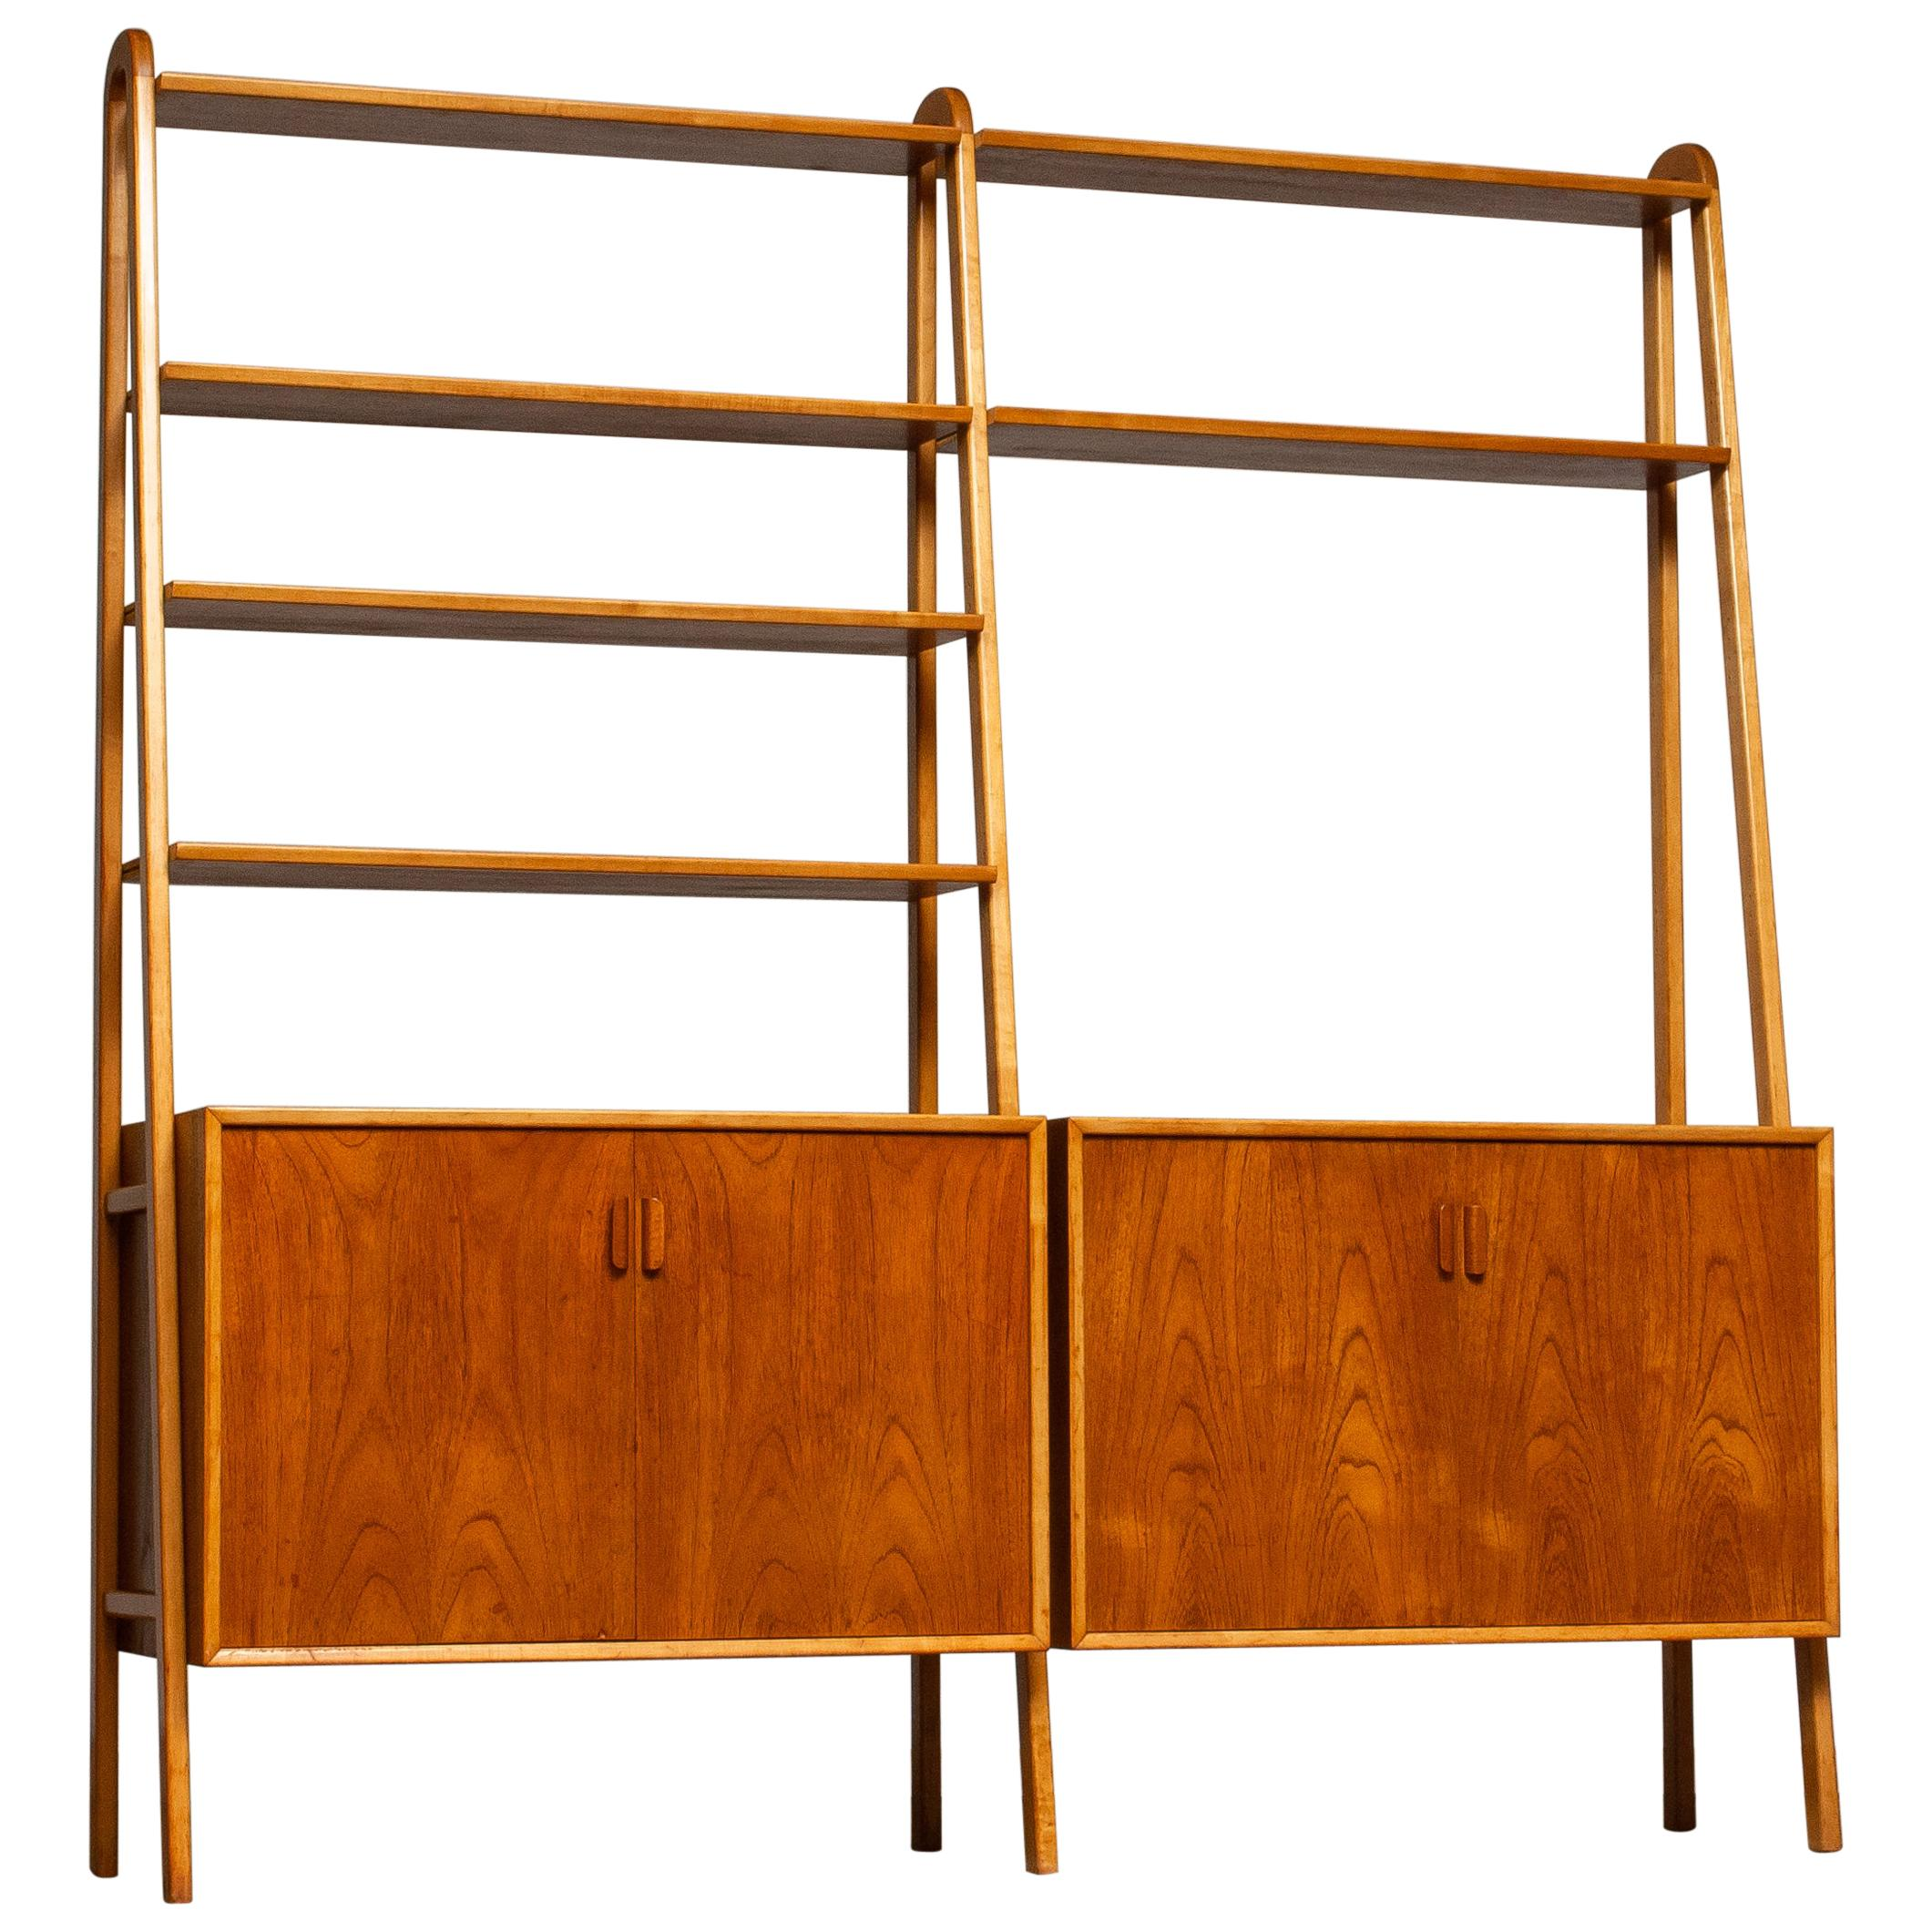 1950s Shelfs / Bookcase / Sideboard in Teak and Beech by Brantorps, Sweden